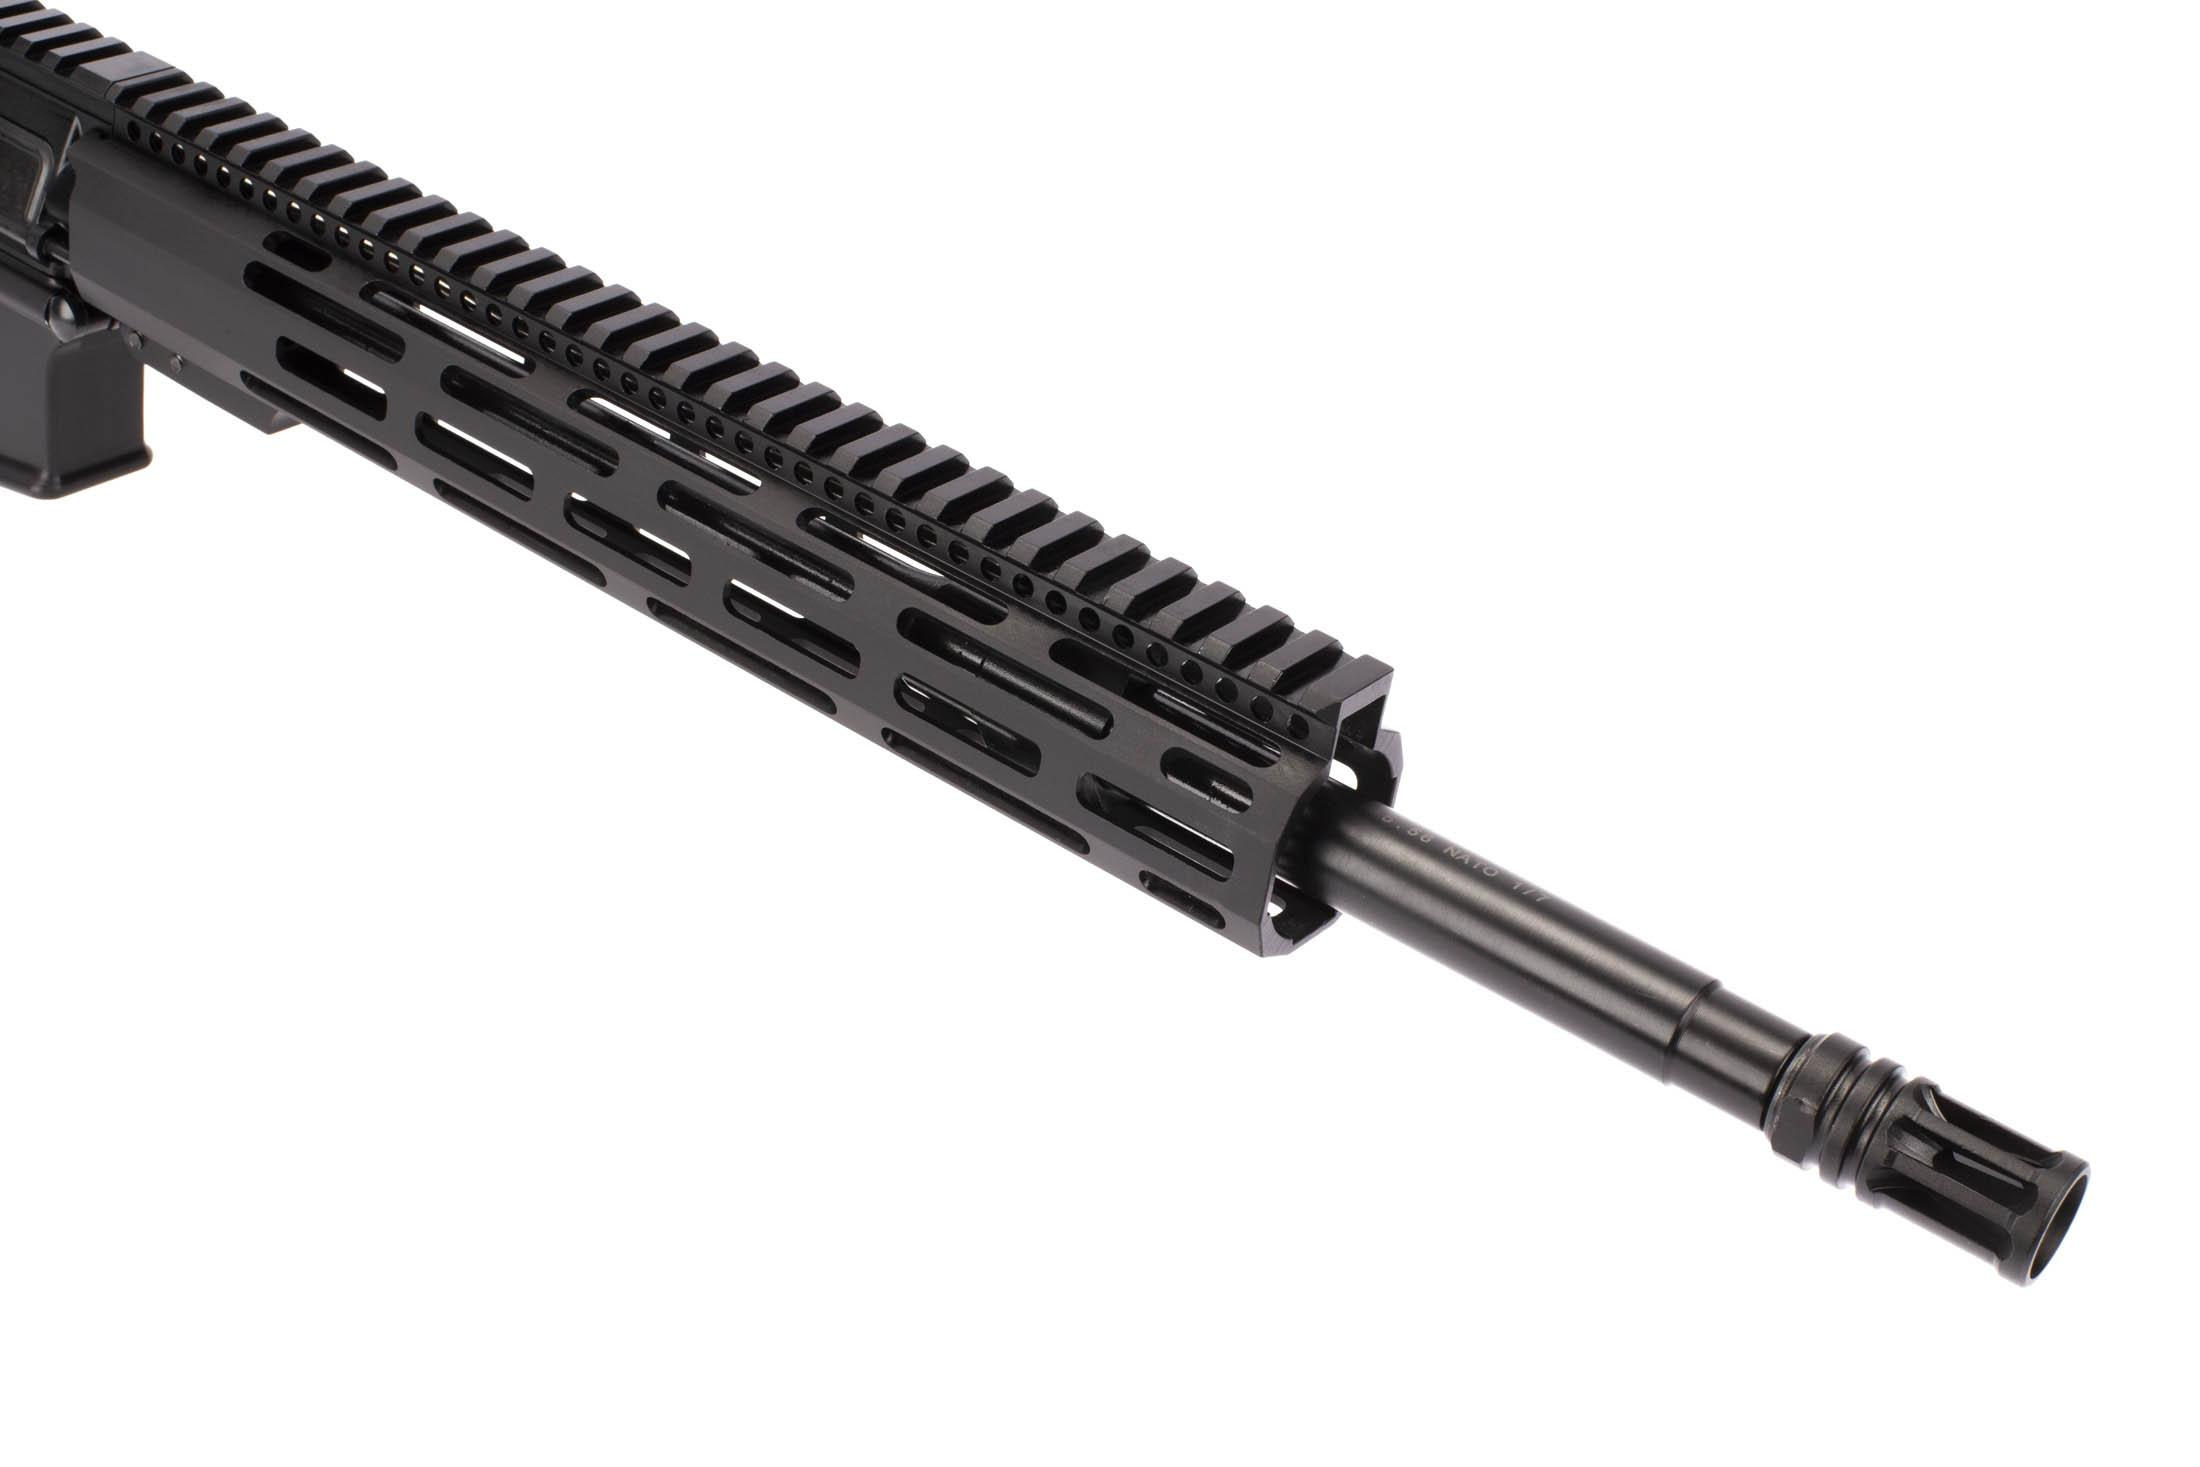 Radical Firearms 16in 5.56 NATO AR-15 with mid-length gas system has 1/2x28 threading and an effective A2 flash hider